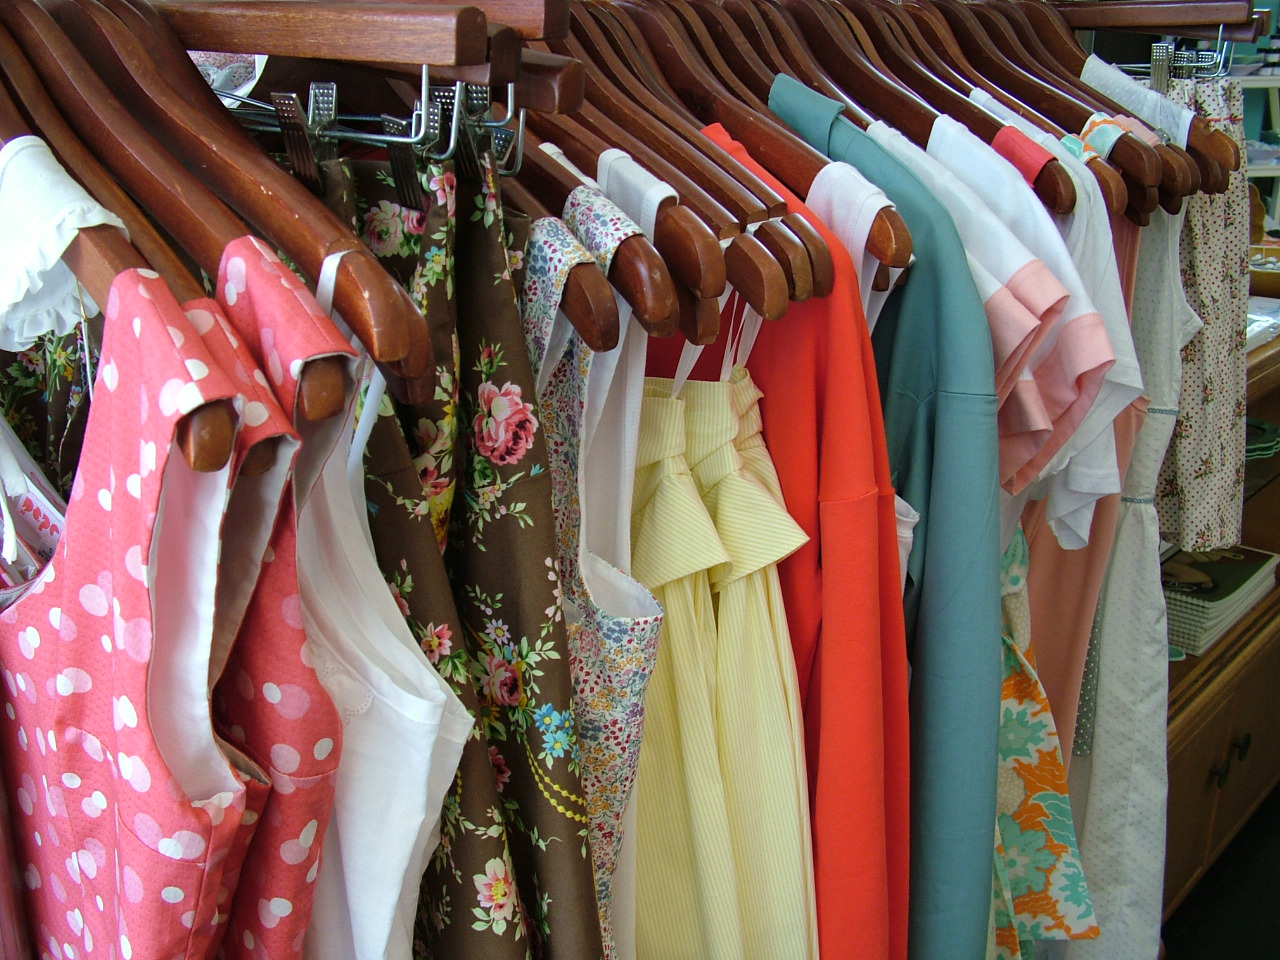 Beautiful dresses for a bargain.